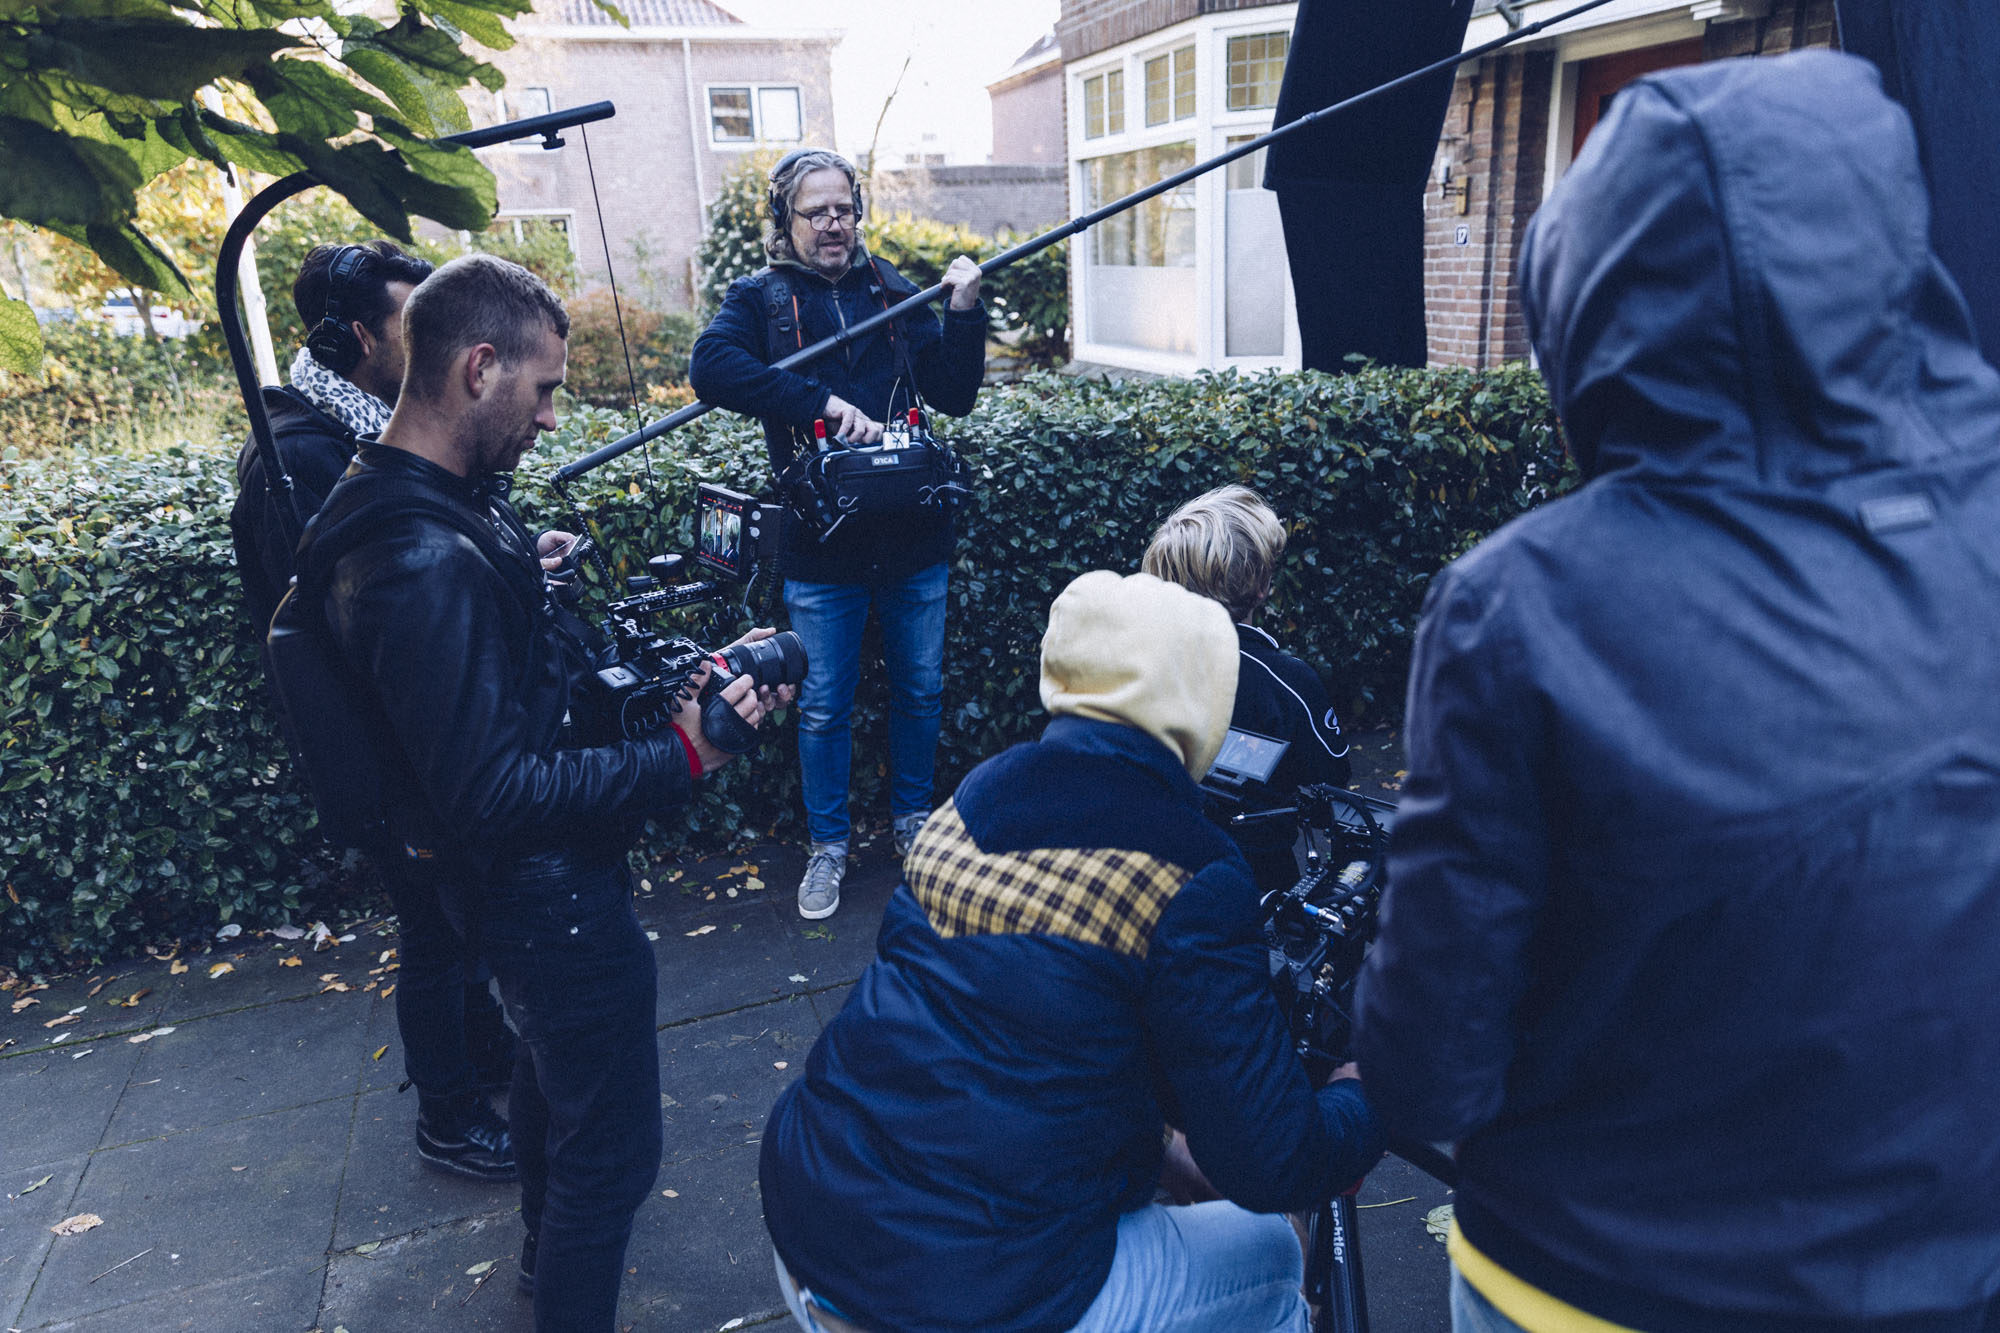 Shooting the behind the scenes video for Poiesz Supermarkten / NoorderTrots Commercial. With the camera guys from Locals Agency.